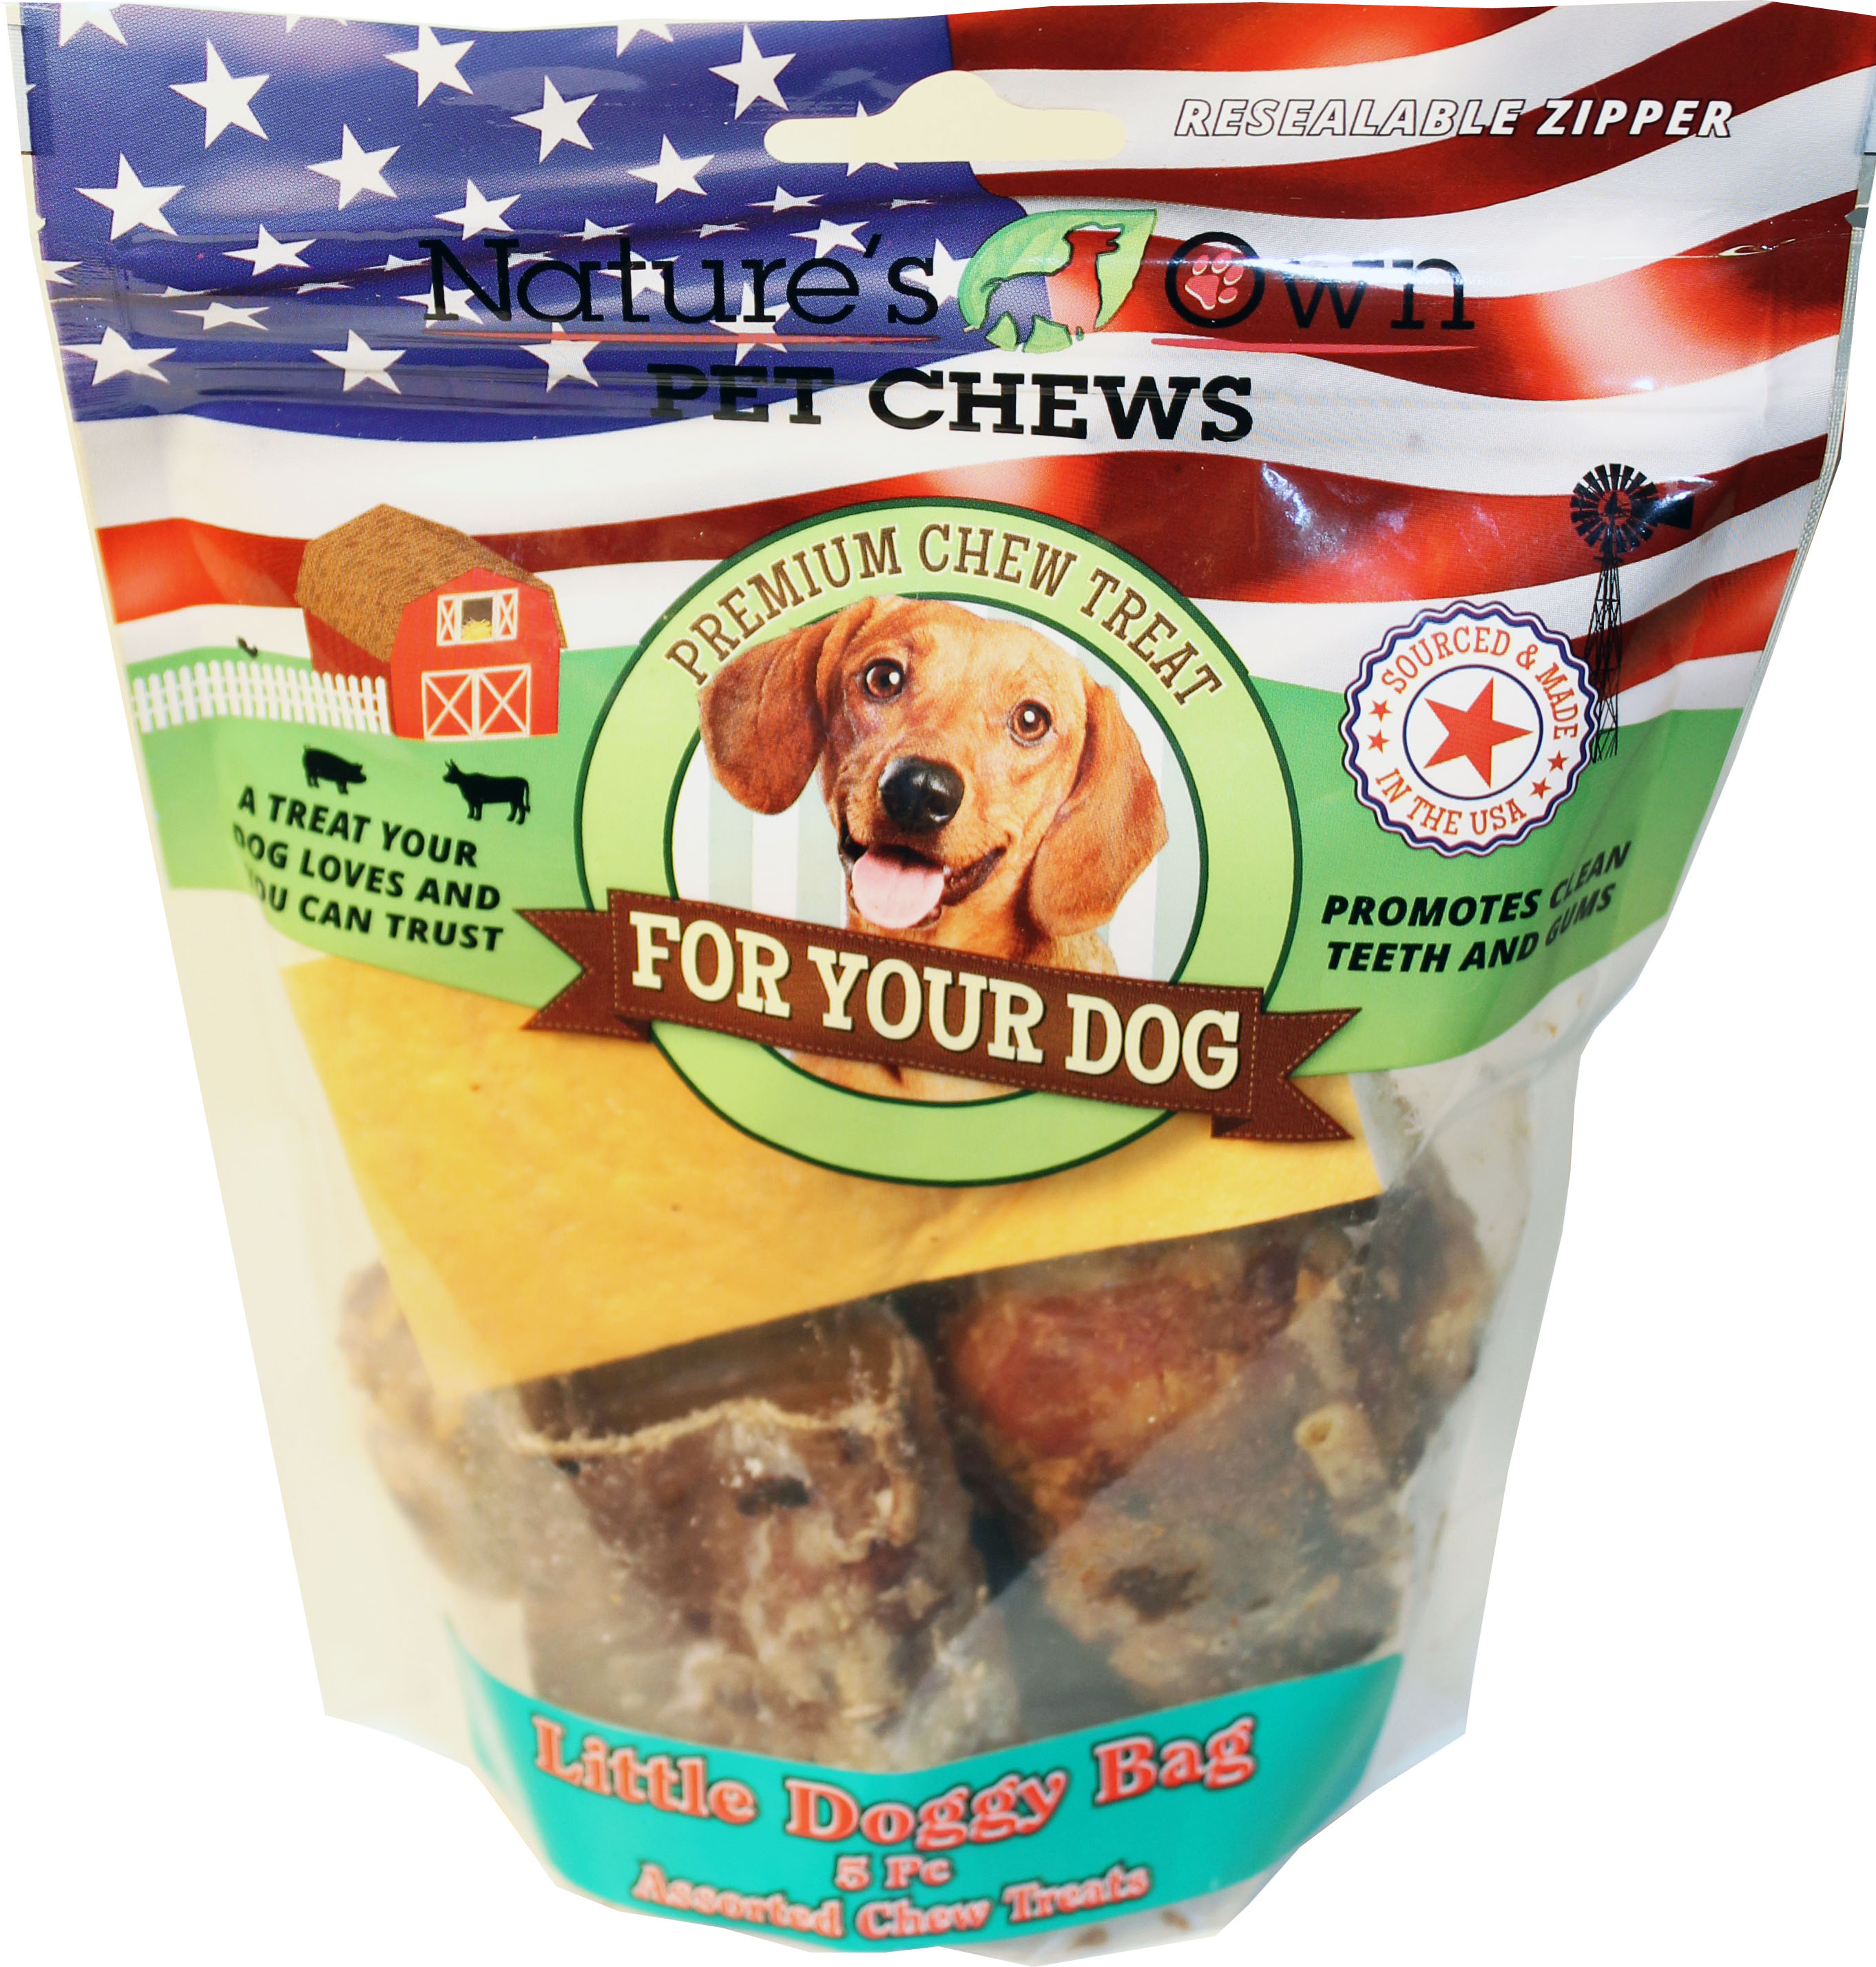 USA LITTLE DOGGY BAG NATURAL CHEW TREATS